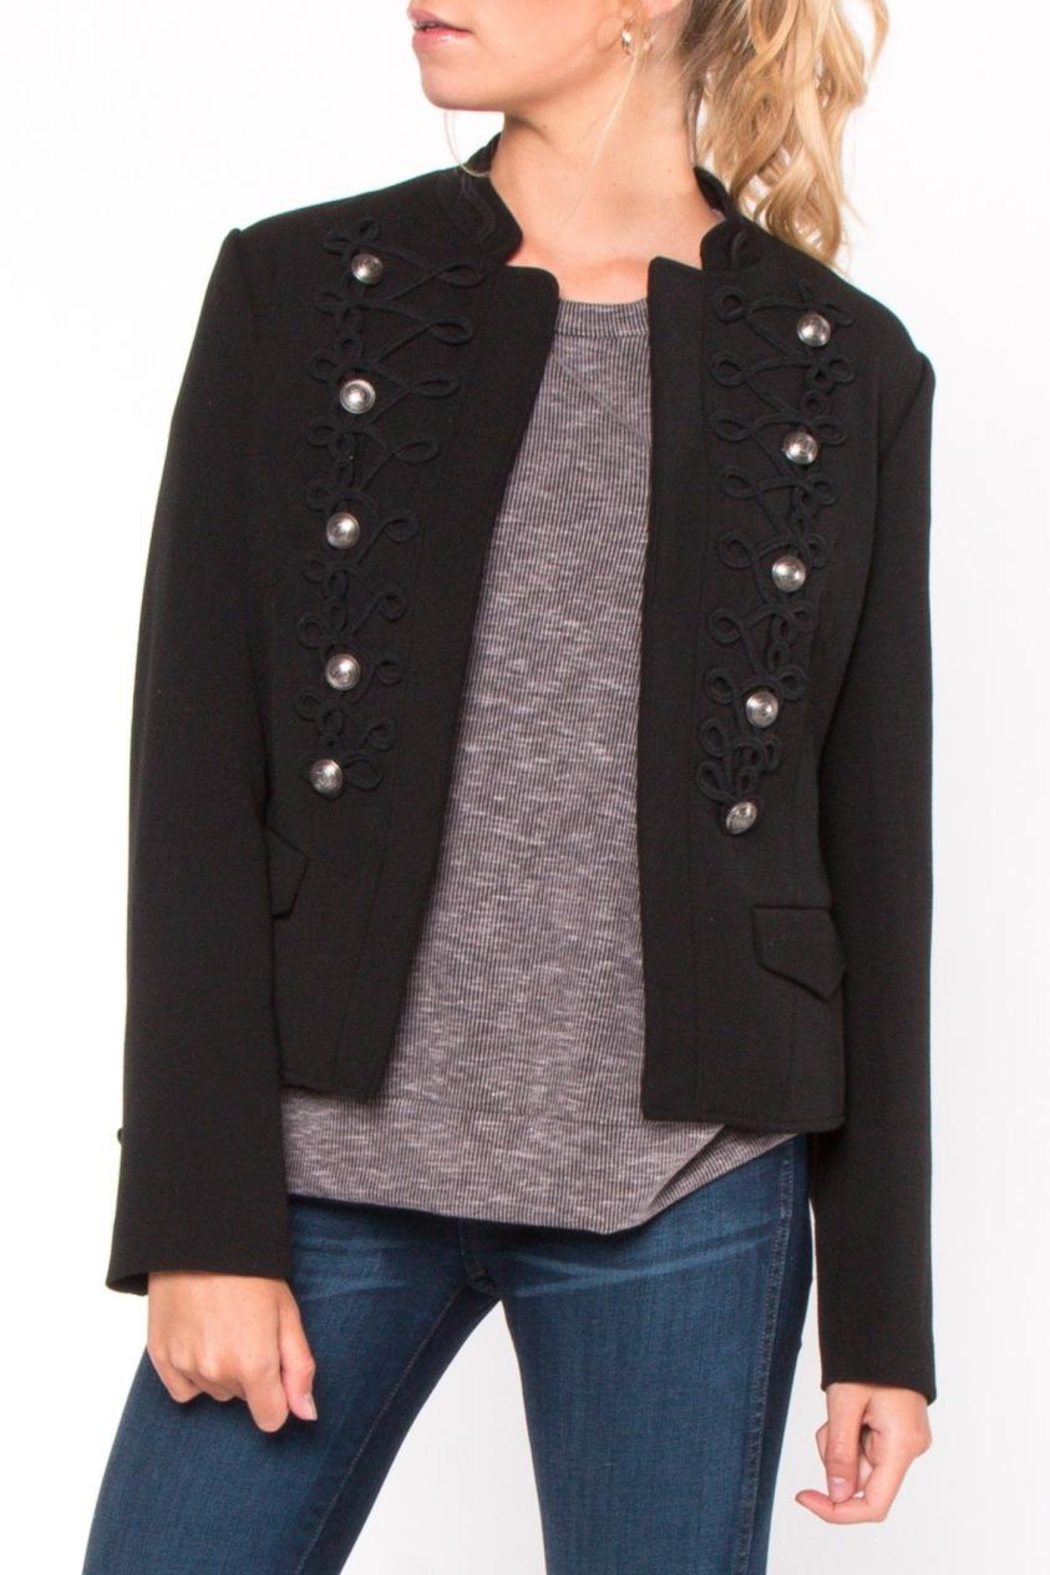 Everly Embroidered Button Jacket - Main Image